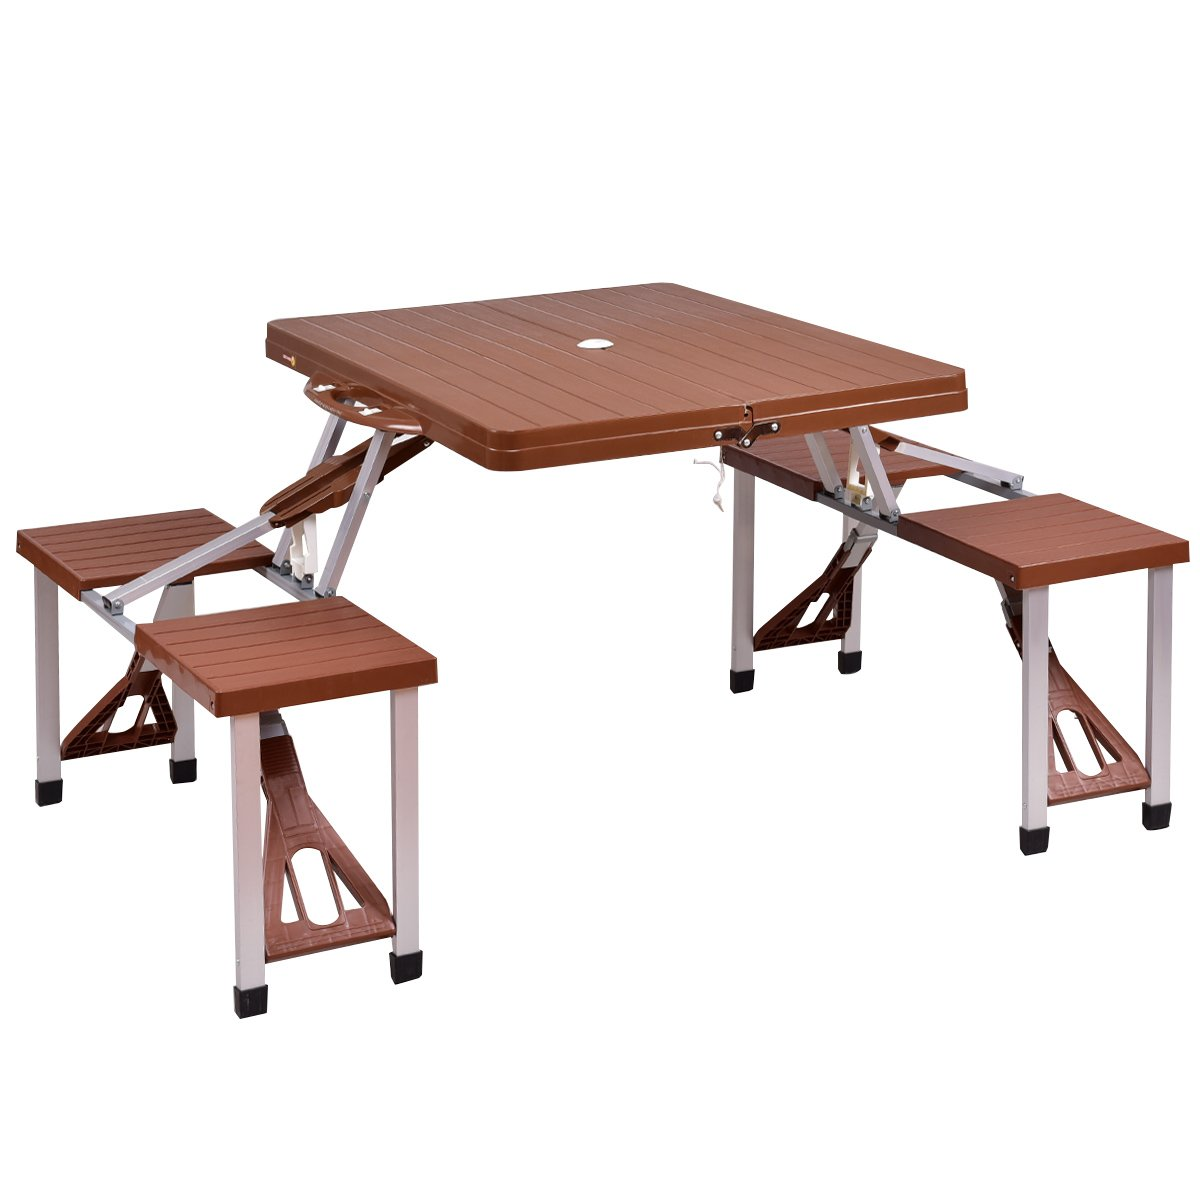 Giantex Portable Folding Picnic Table with Seating for 4 Garden Party Camping Time Design (Brown) by Giantex (Image #1)